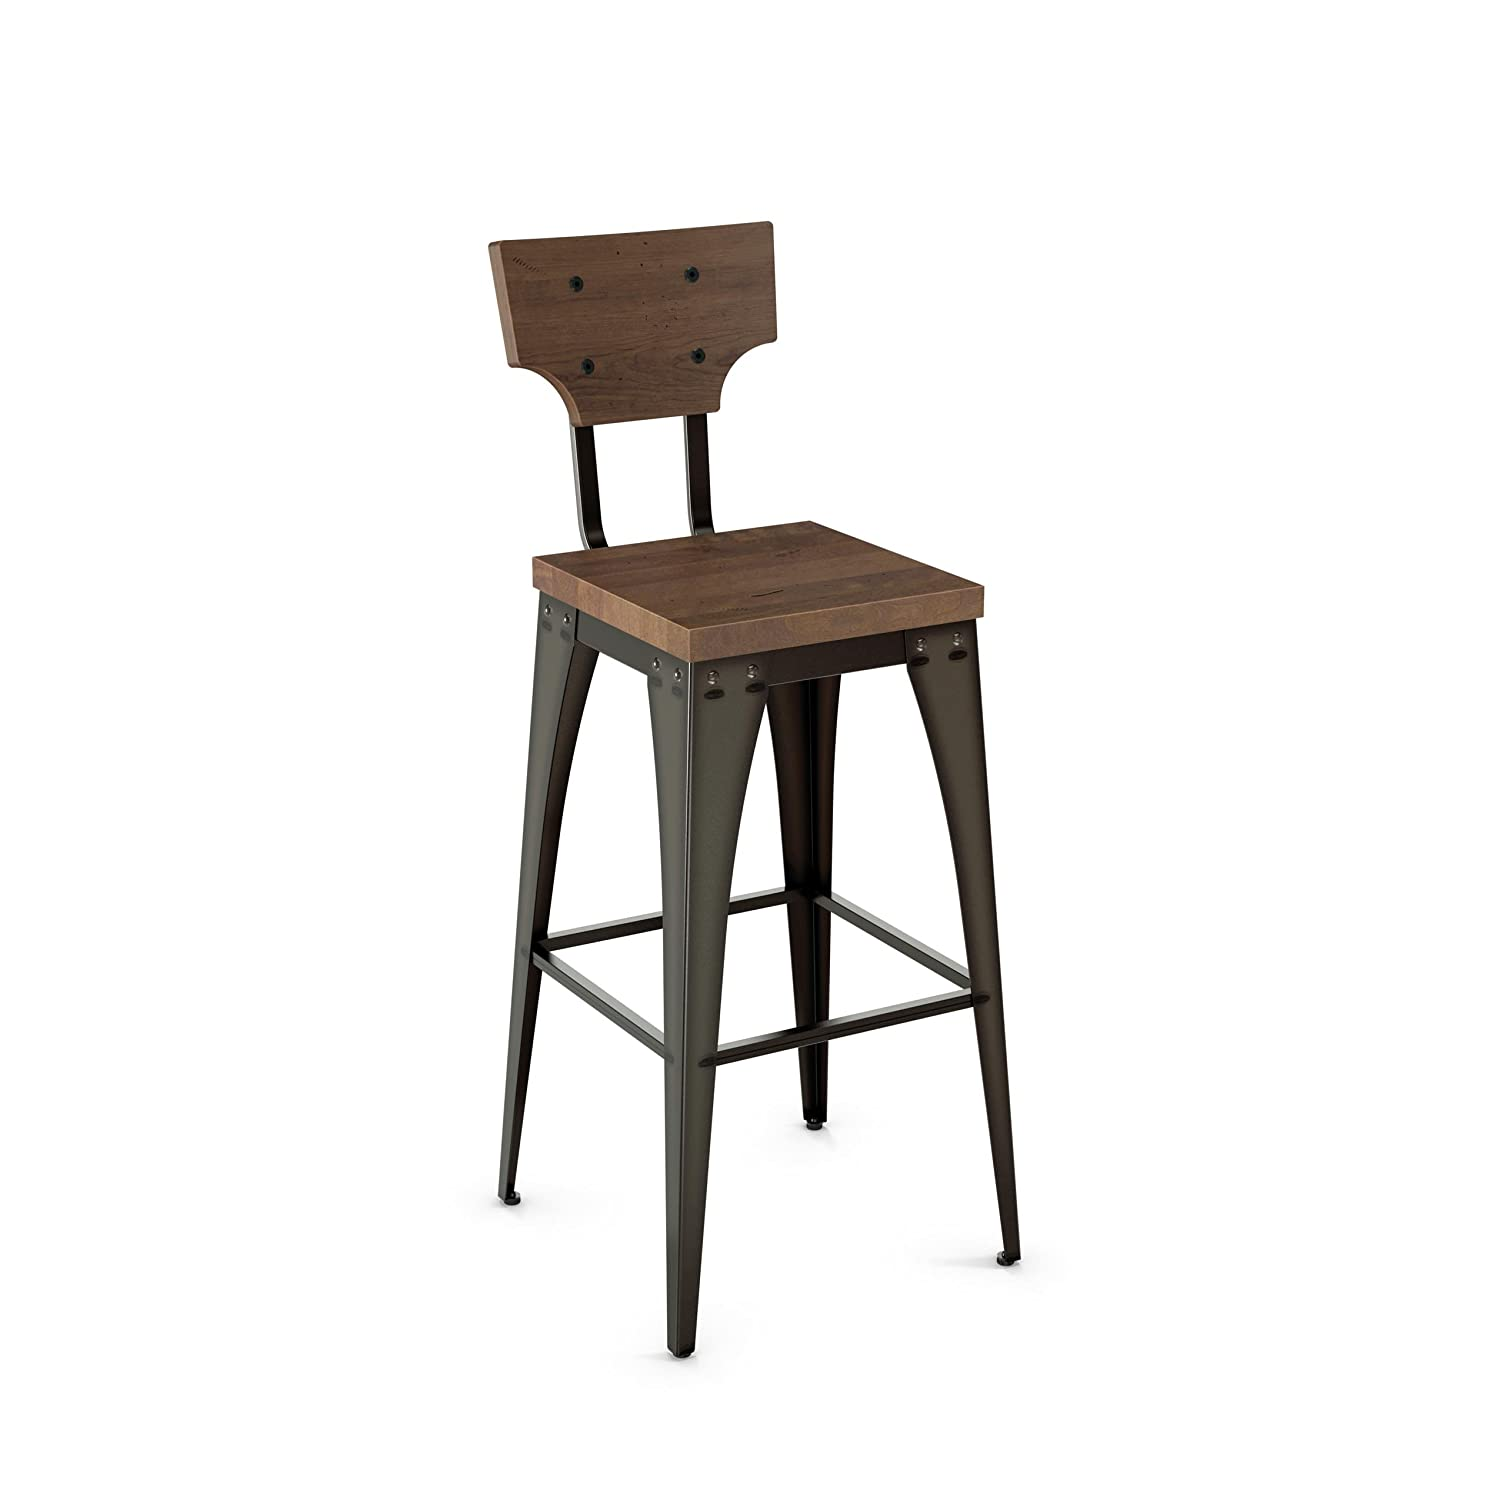 Tremendous Amazon Com Amisco Station Metal Bar Stool In Semi Gmtry Best Dining Table And Chair Ideas Images Gmtryco